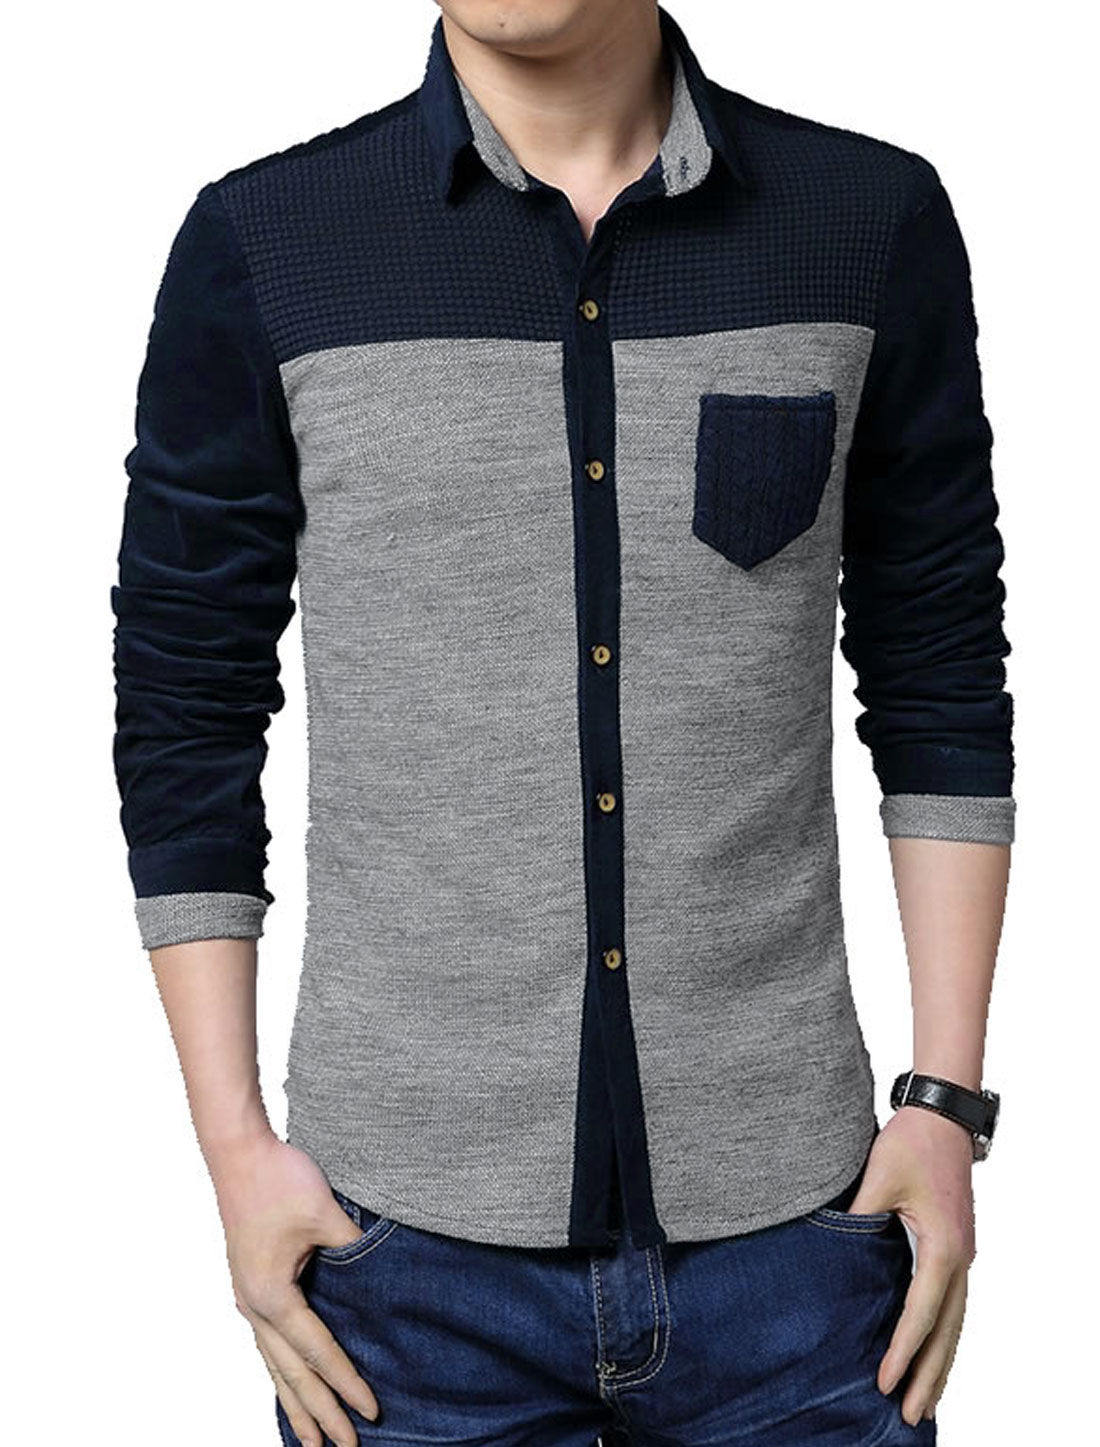 Men Contrast Color Button Cuffs Single Breasted Knit Shirt Light Gray M